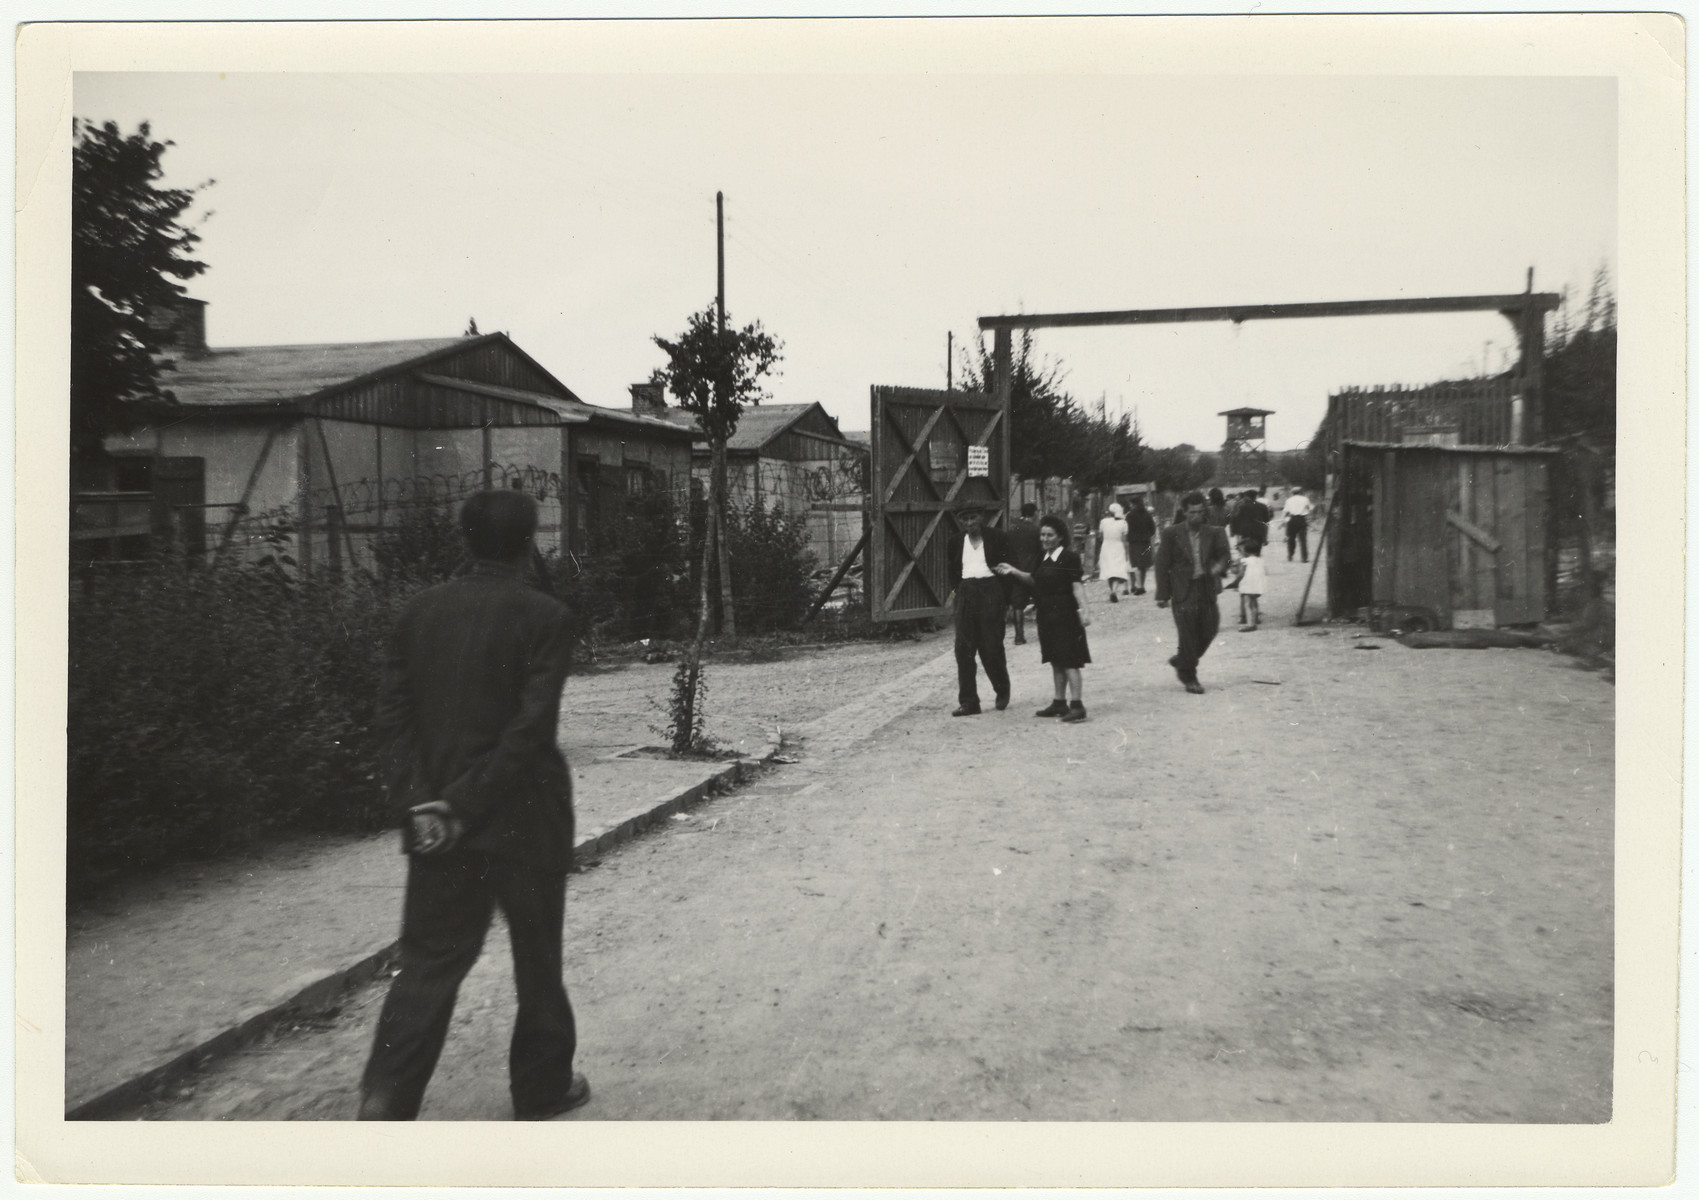 Displaced persons walk down the main street of their camp, probably a former concentration camp.  A watch tower can be seen in the background and barbed wire on the sides.